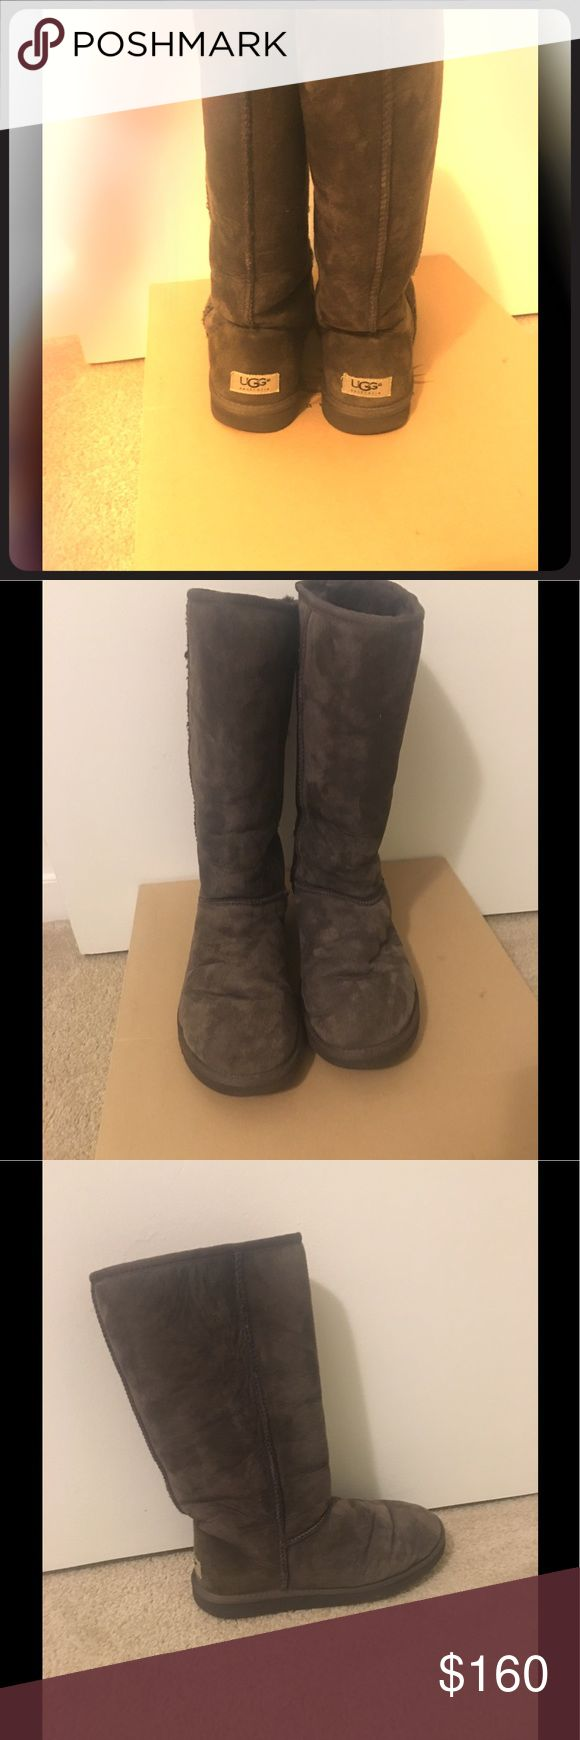 ugg boots size 9 cheap